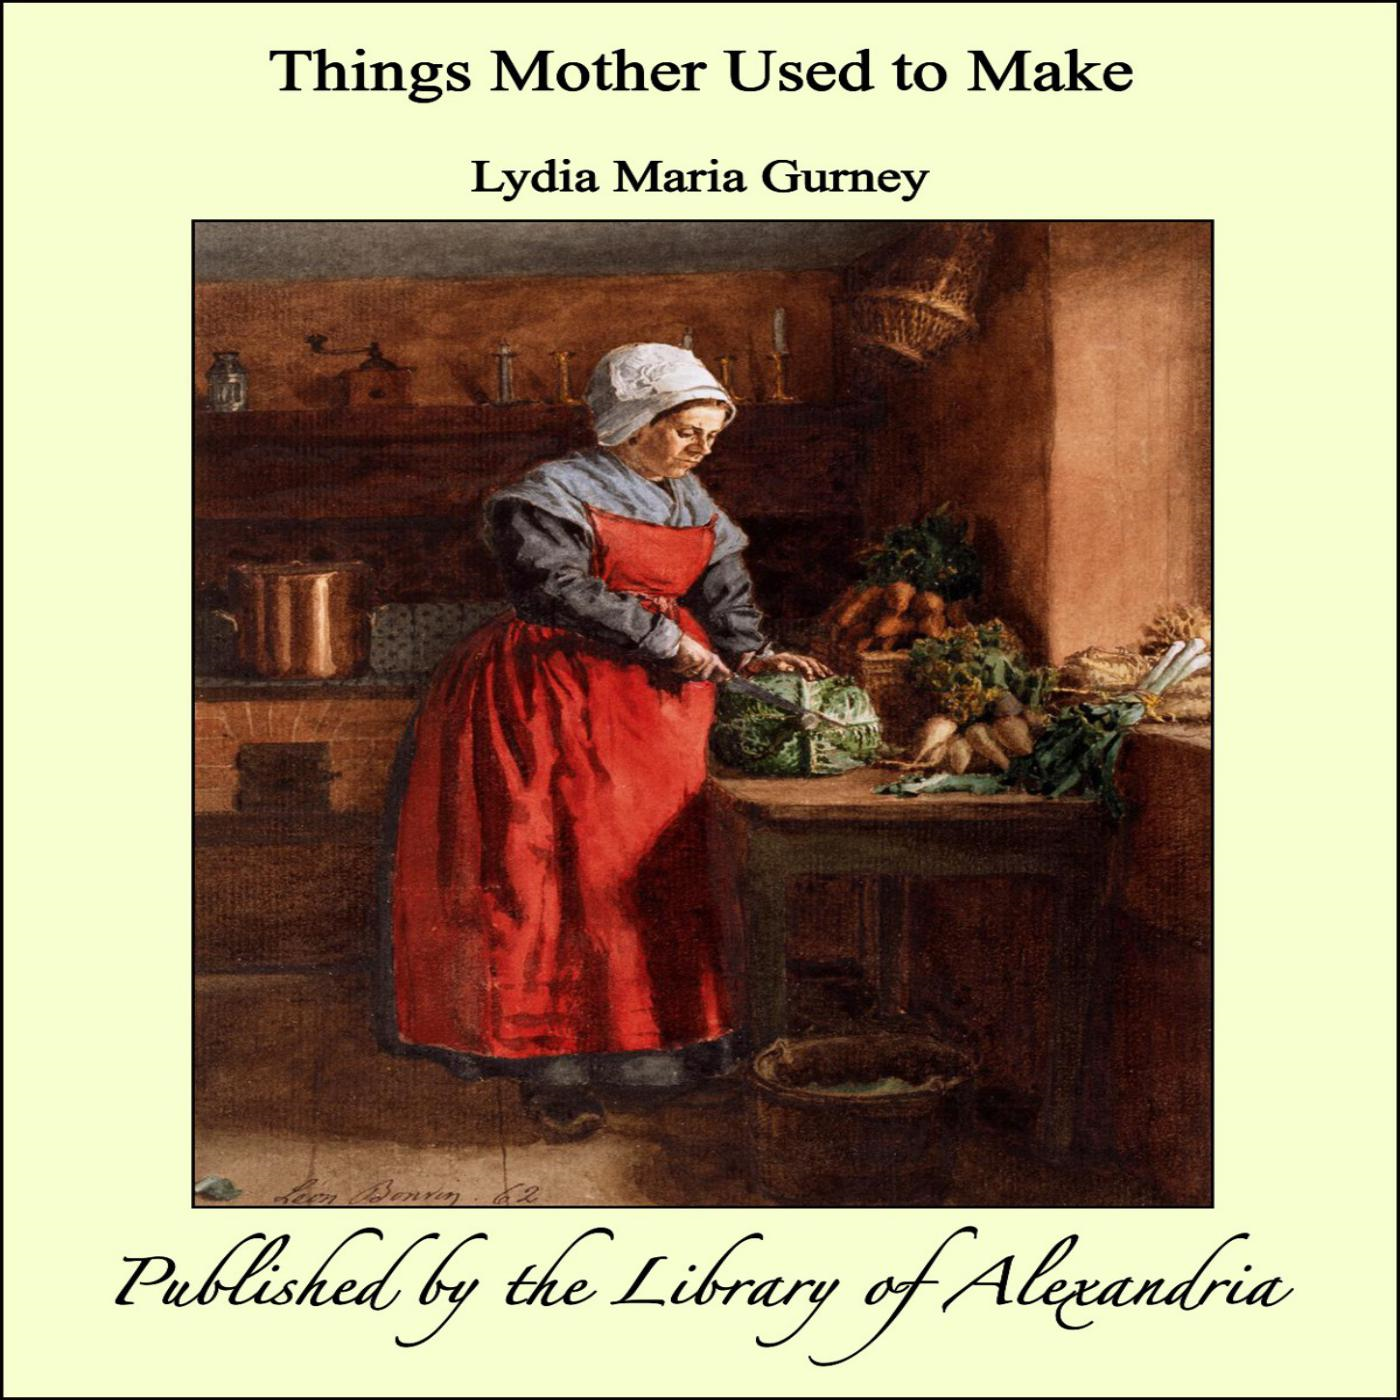 Things Mother Used to Make